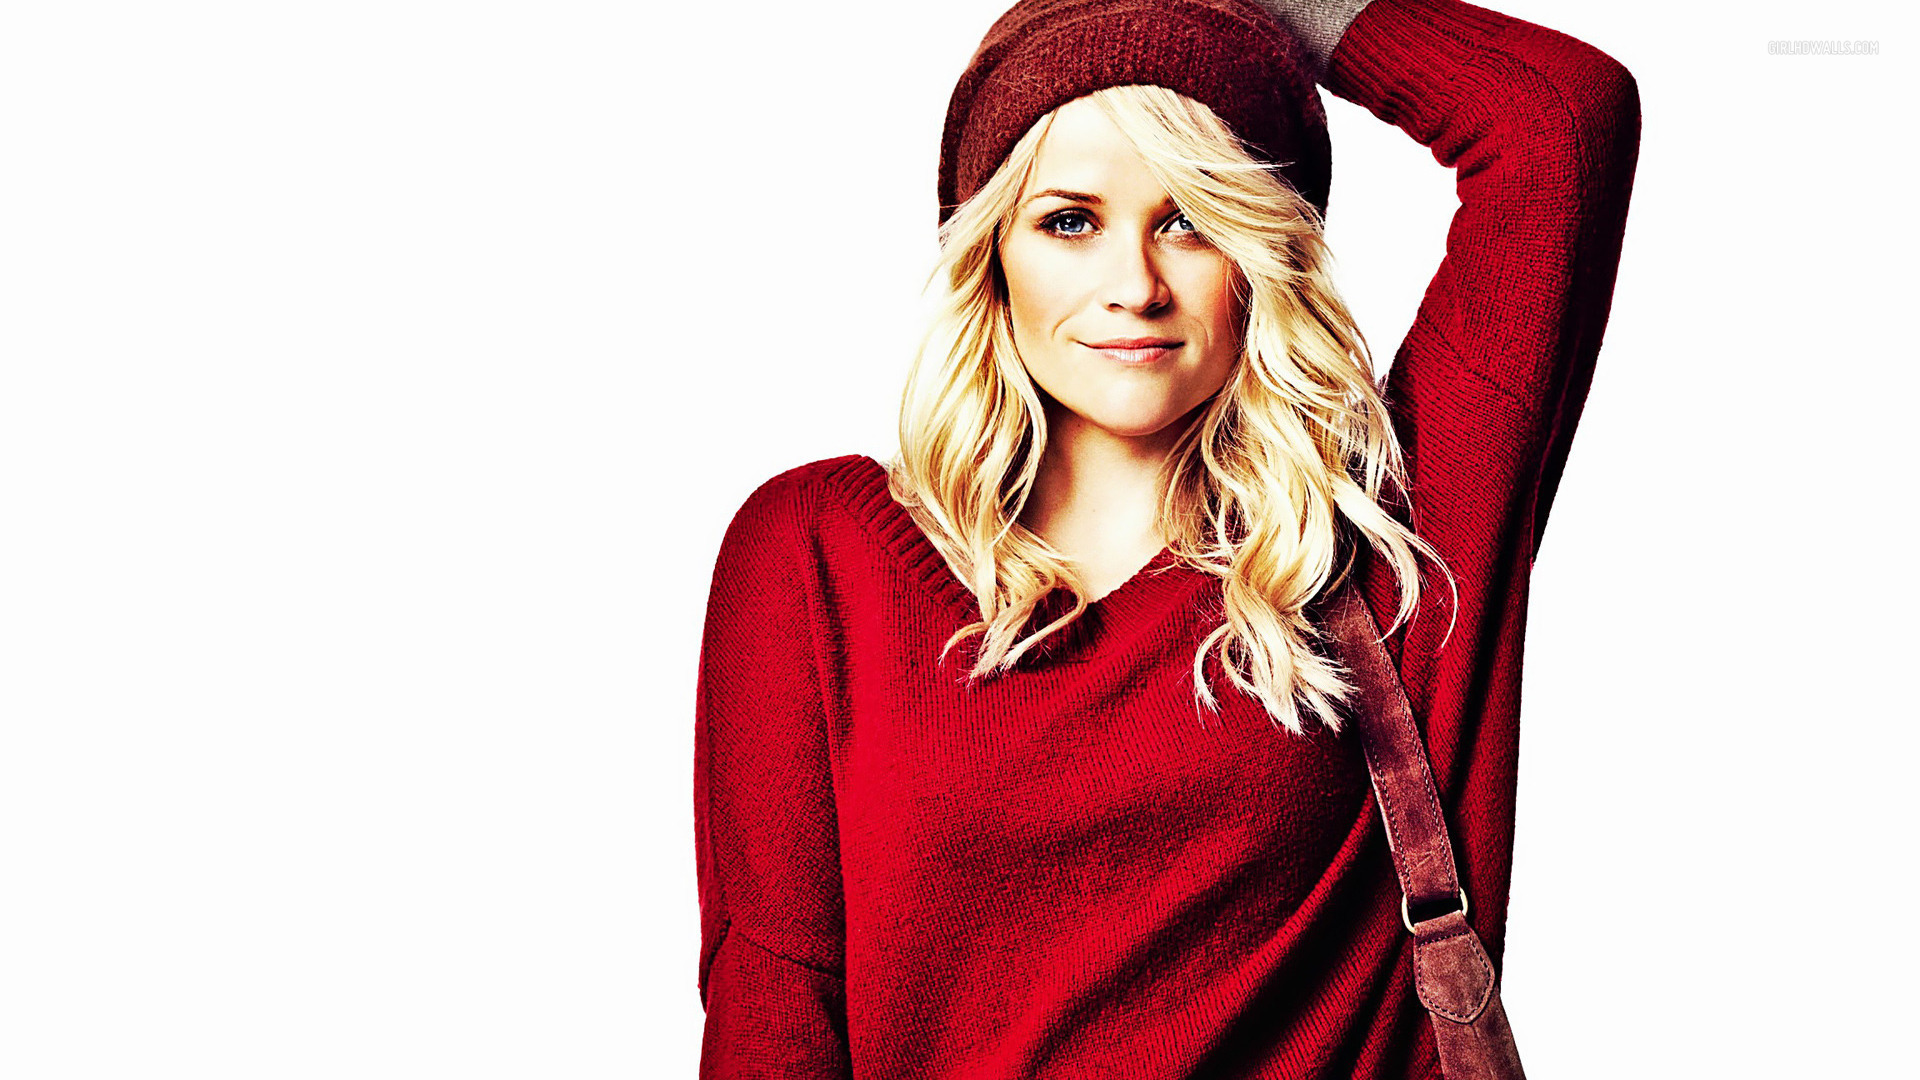 Reese-Witherspoon-Wallpaper-39